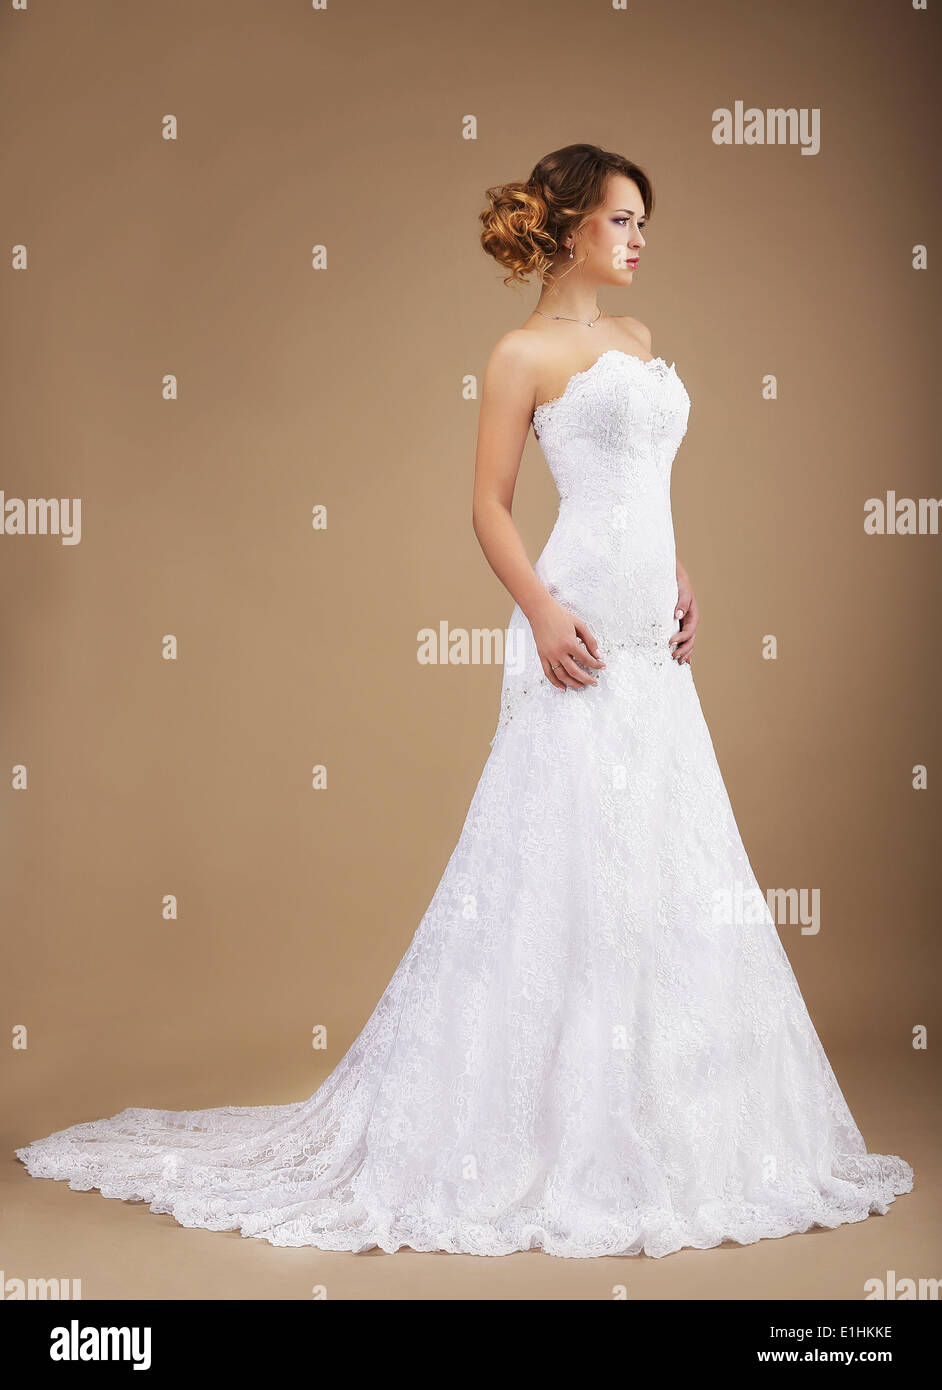 Elegance. Young Graceful Newlywed in Long Dress - Stock Image